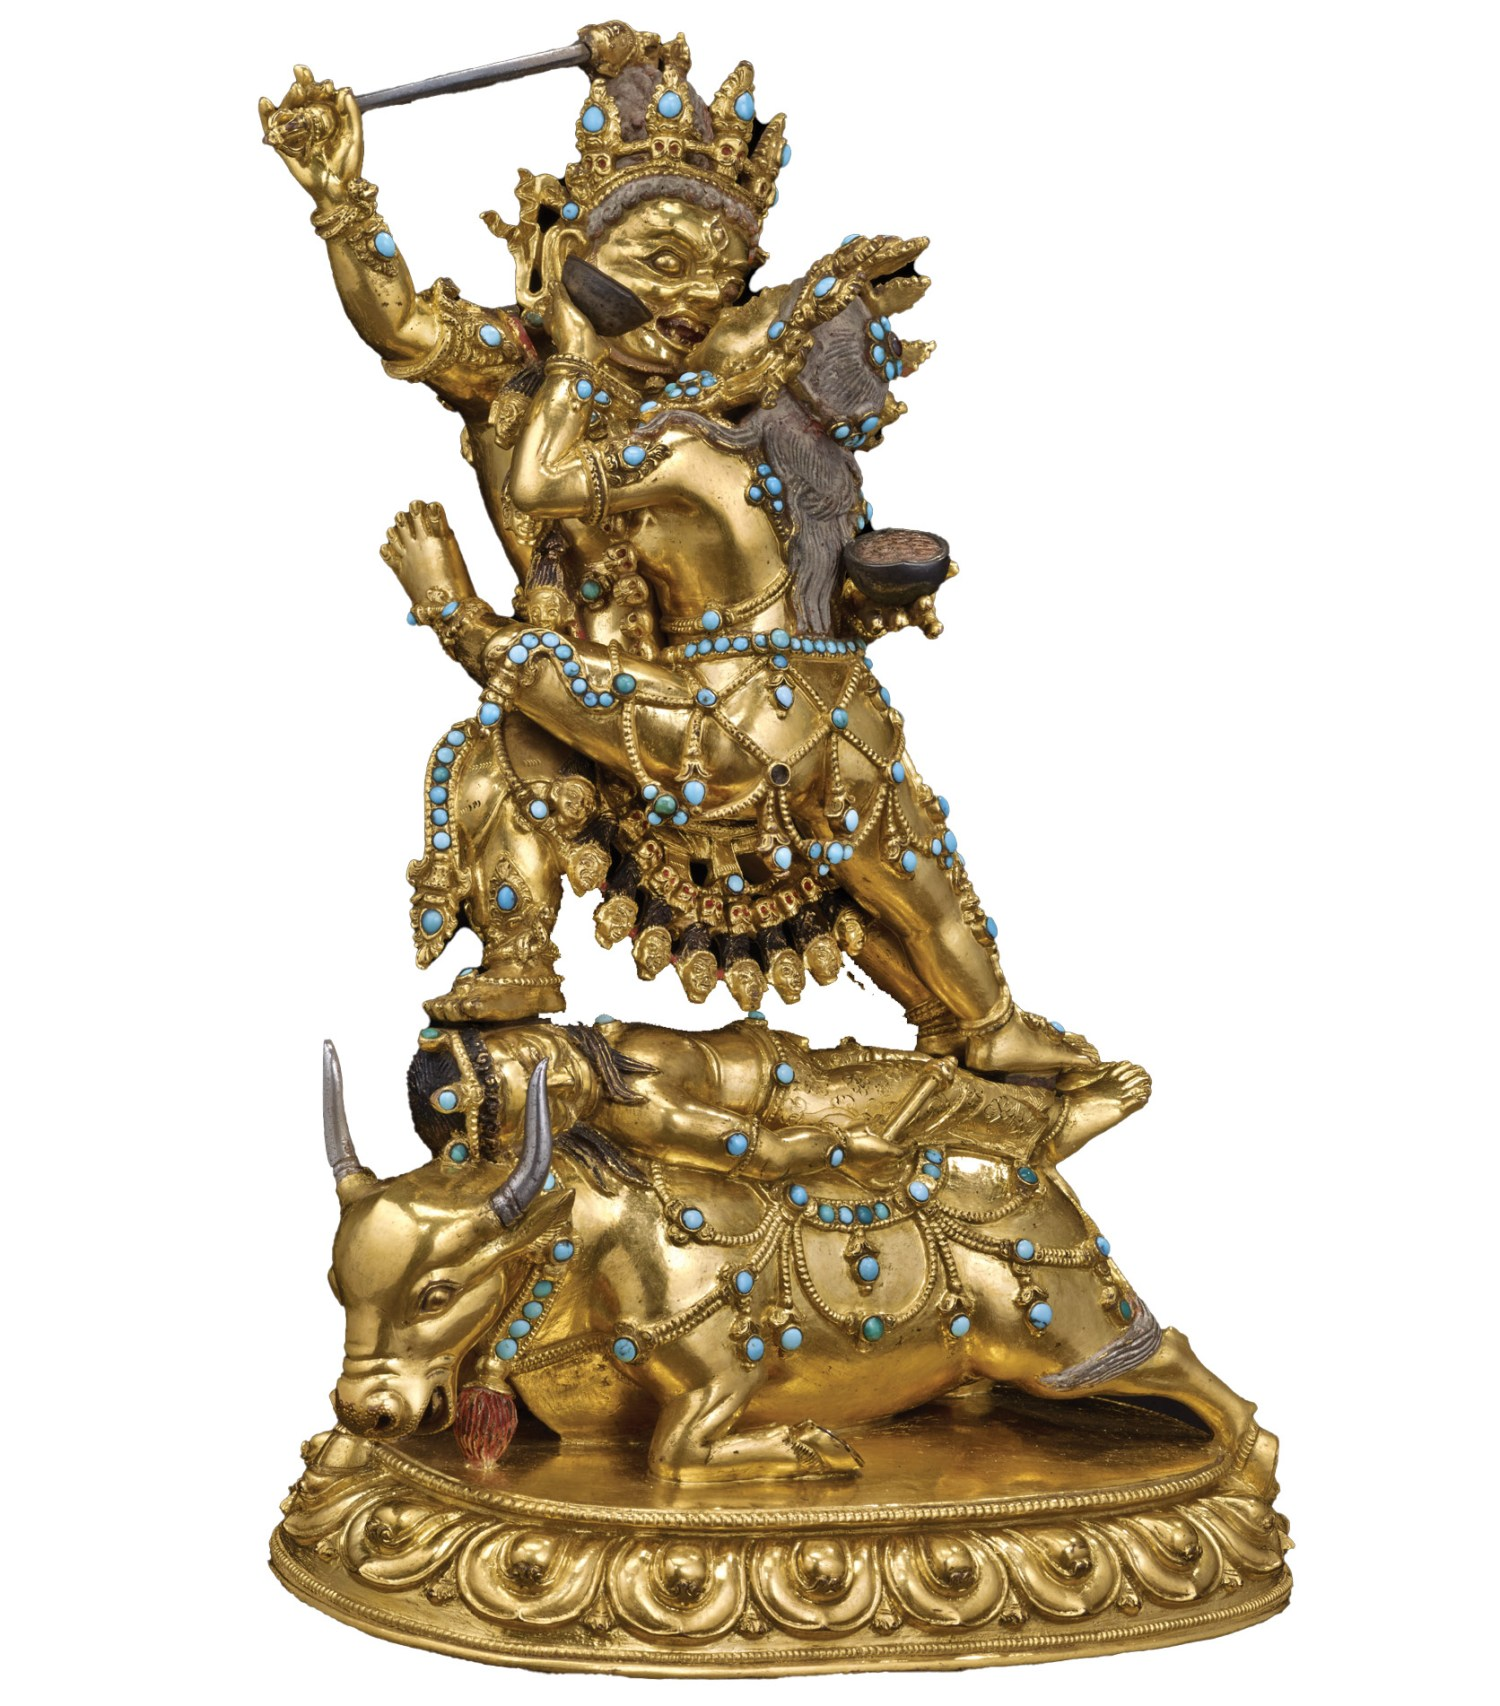 ABOVE Sculpture of Raktayamari in union with Vajravetali, Tibet, 16th-17th century. Bronze with turquoise, gold, and pigment. Size: 21.8 x 15.8 x 11.4cm